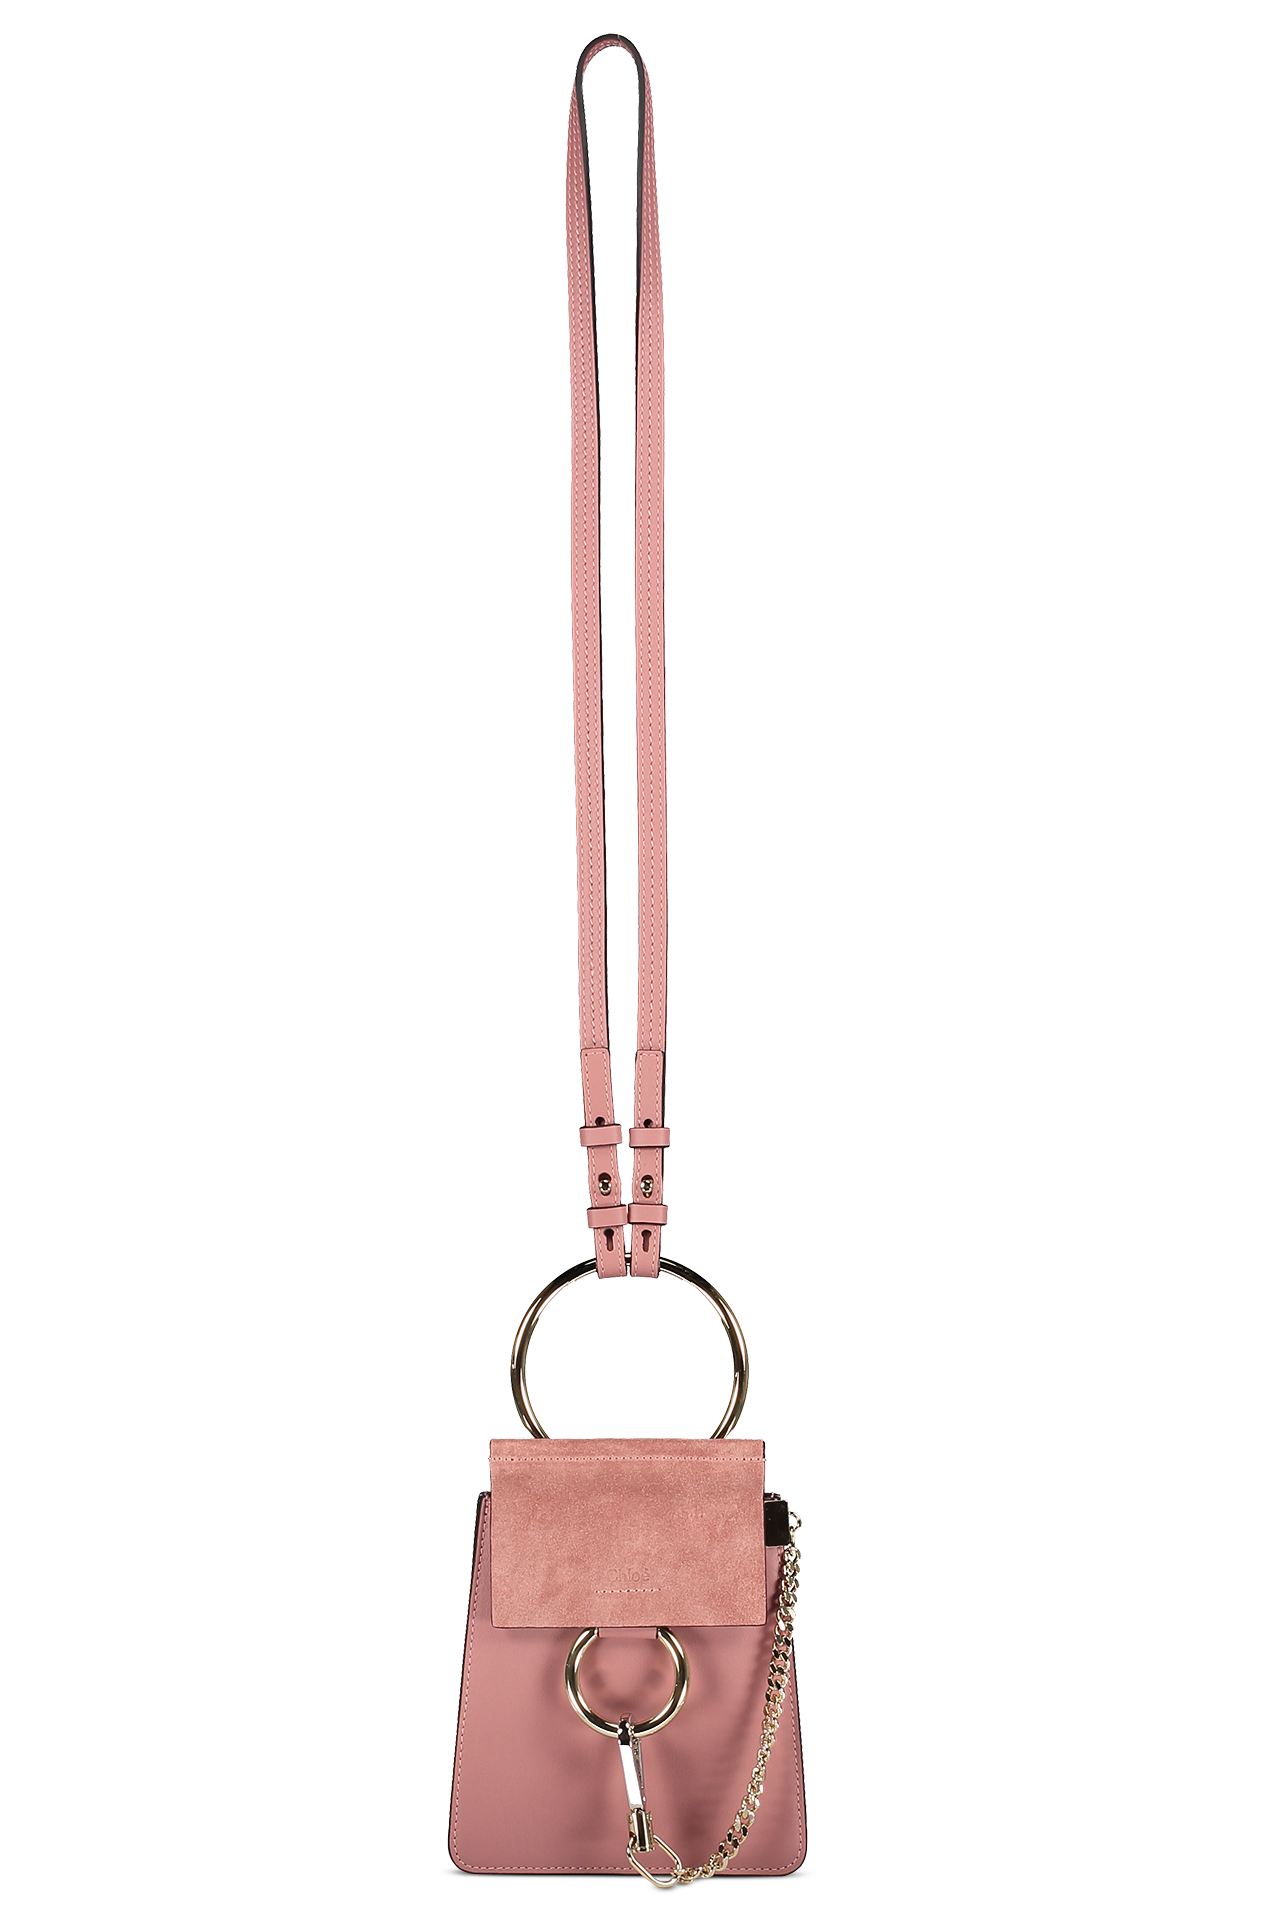 Image of Chloé Faye Bracelet Bag Rusty Pink  with strap